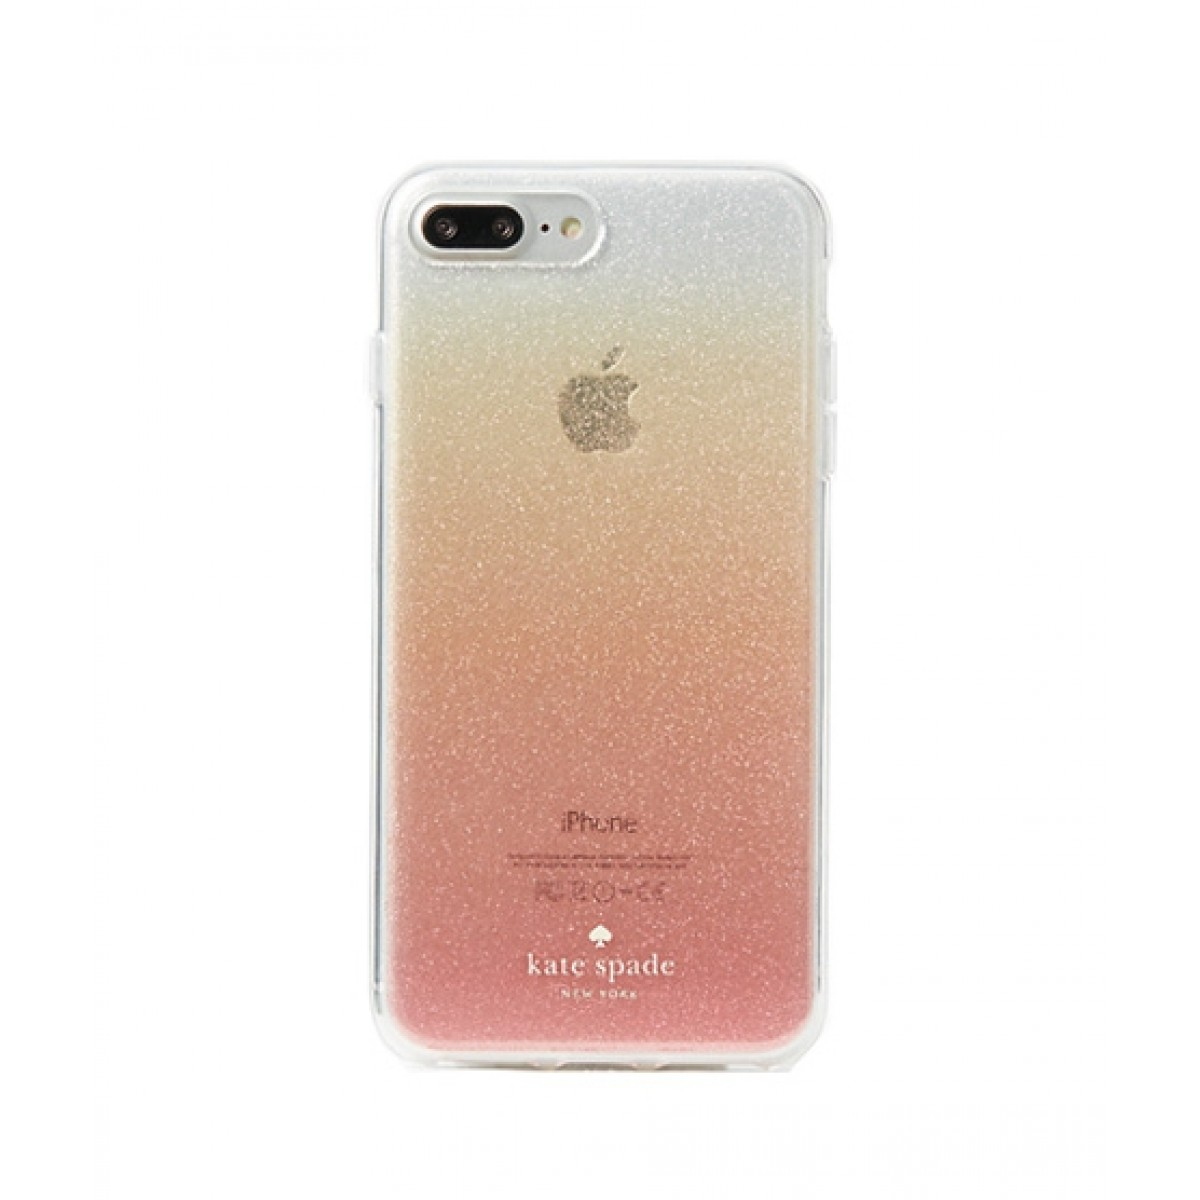 sports shoes 64e4f cd21c Kate Spade Glitter Ombre Pink Case For iPhone 8 Plus